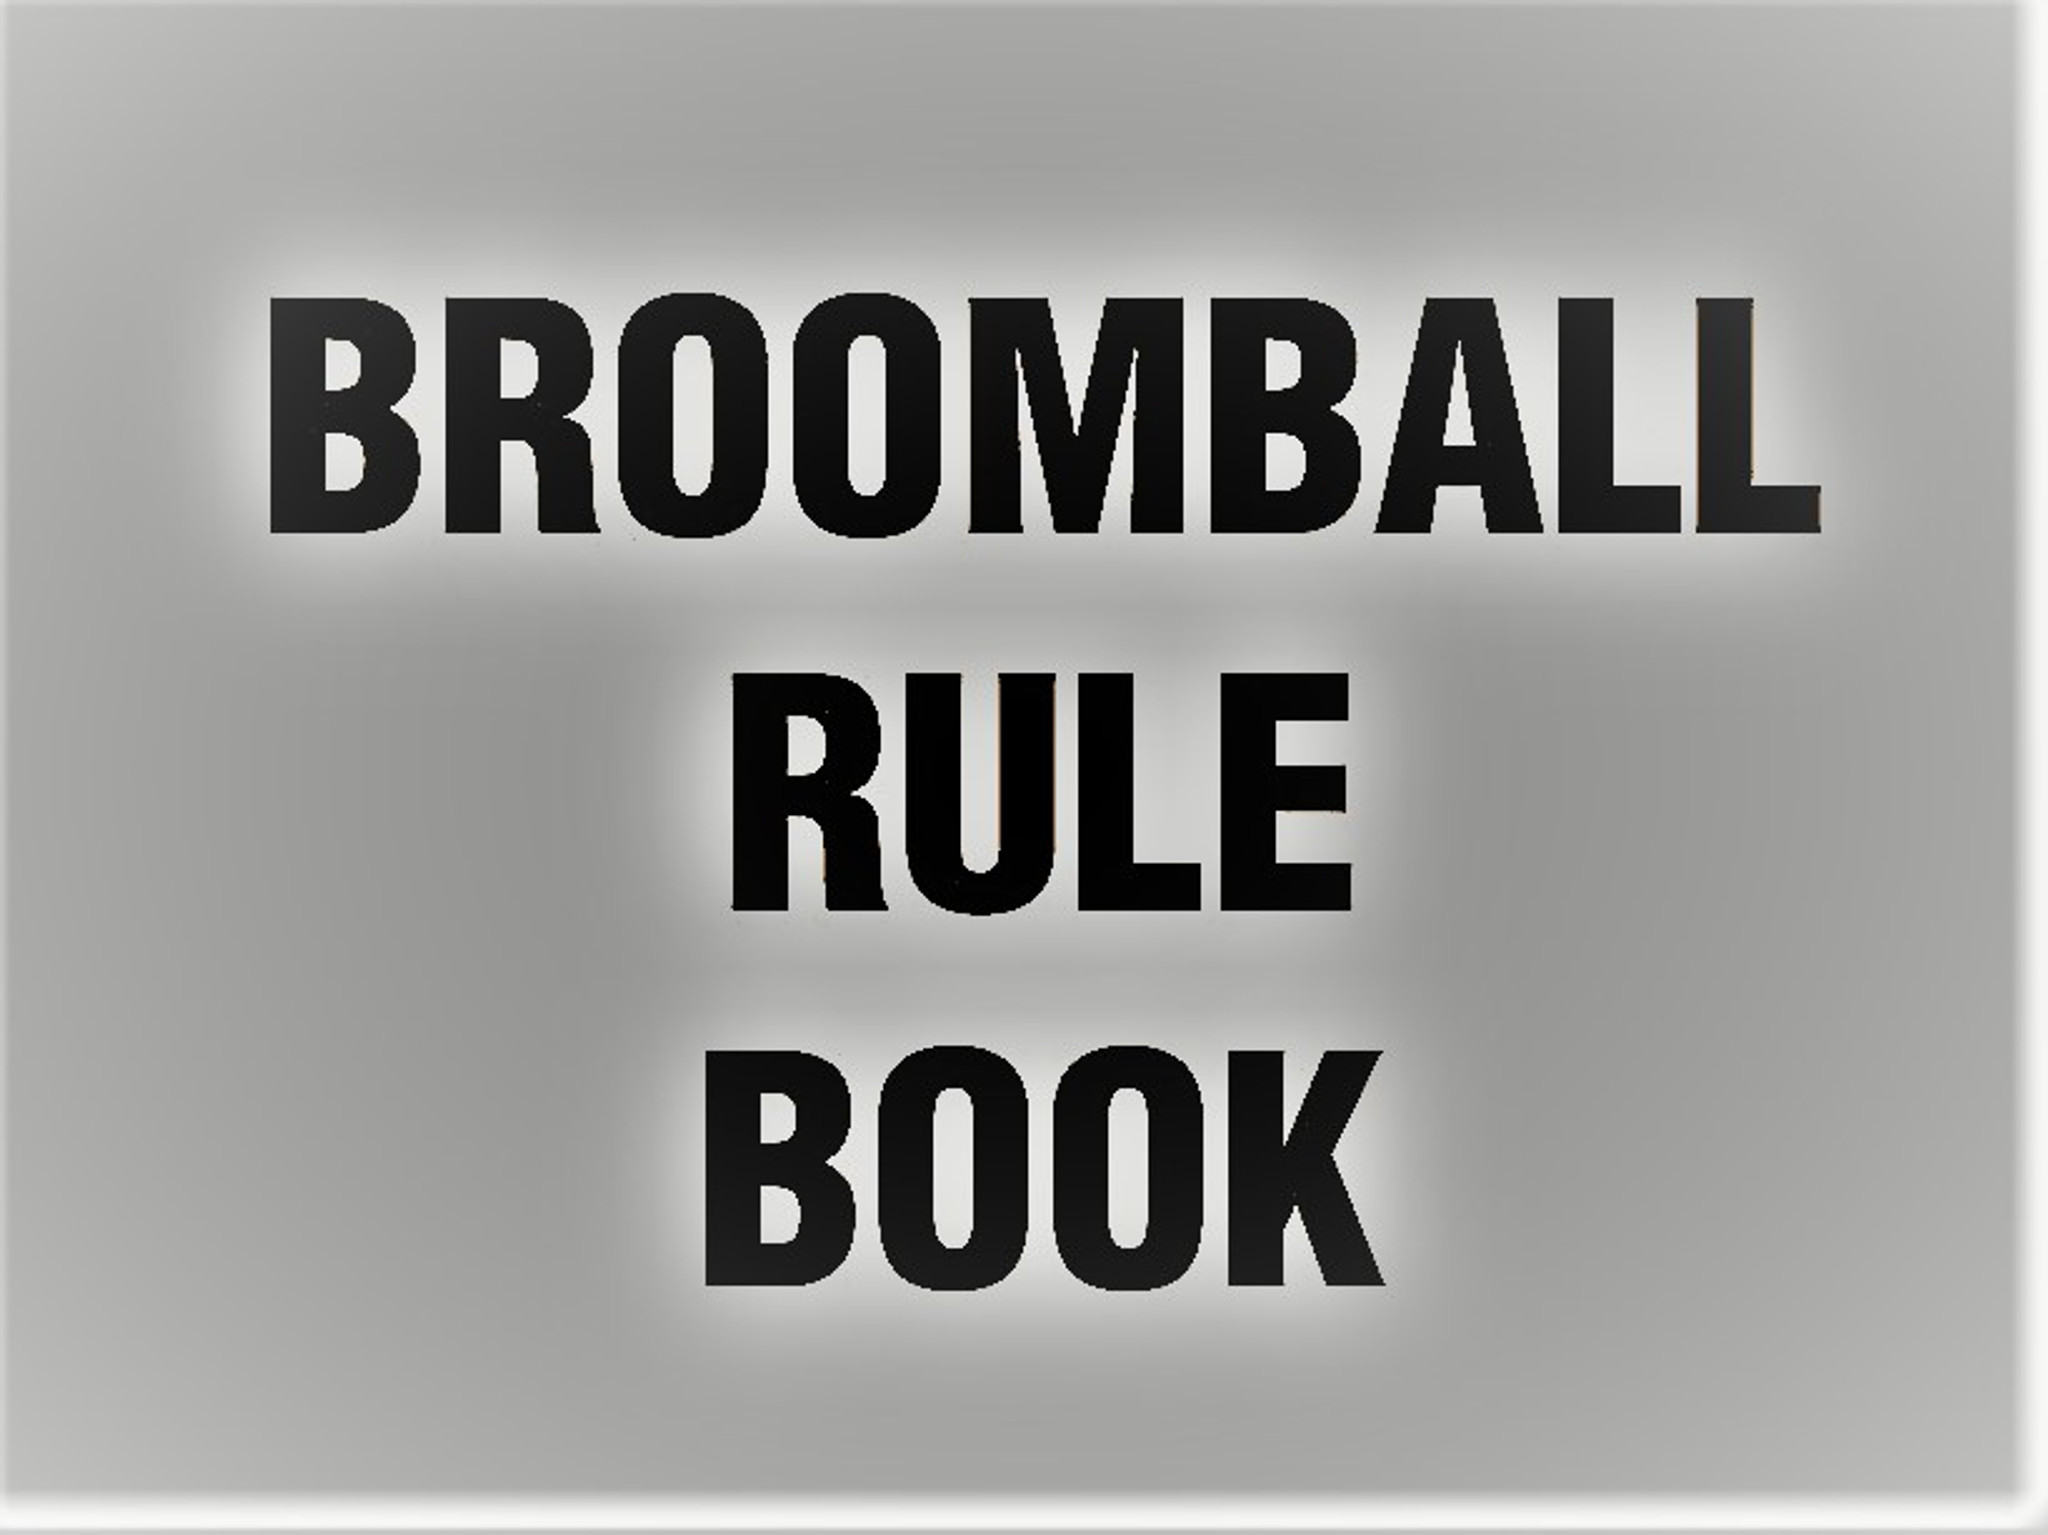 Condensed Broomball League Rules!